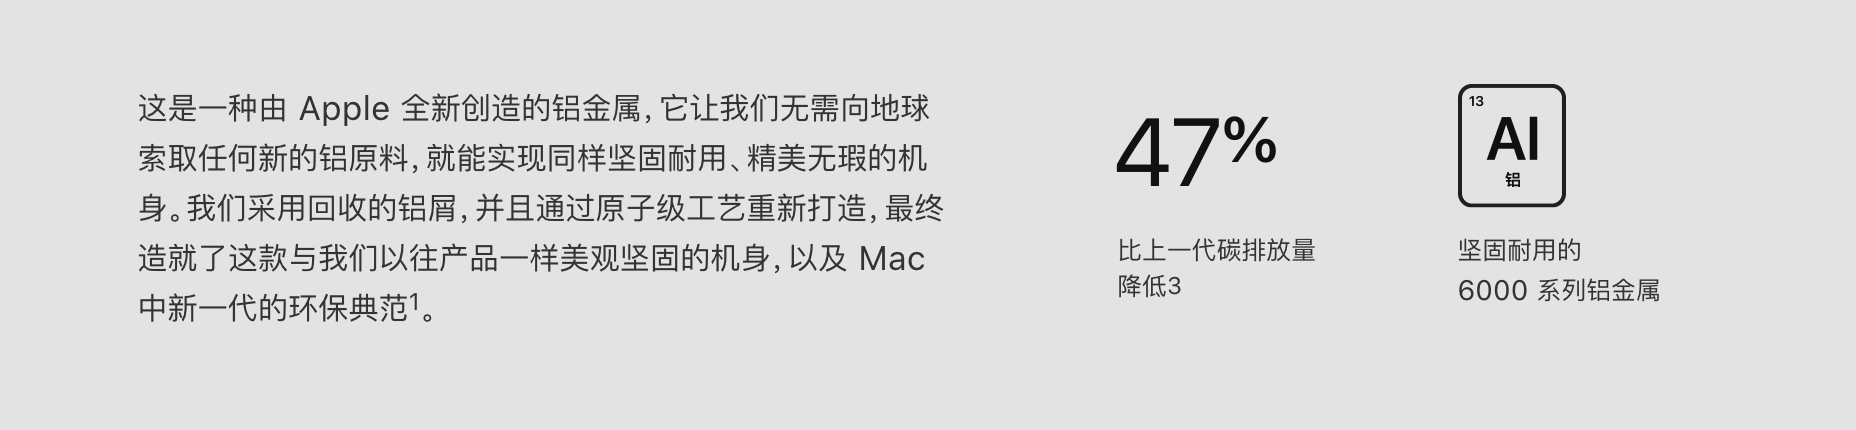 全新 MacBook Air与Macmini发布,你会买吗?-Mac毒